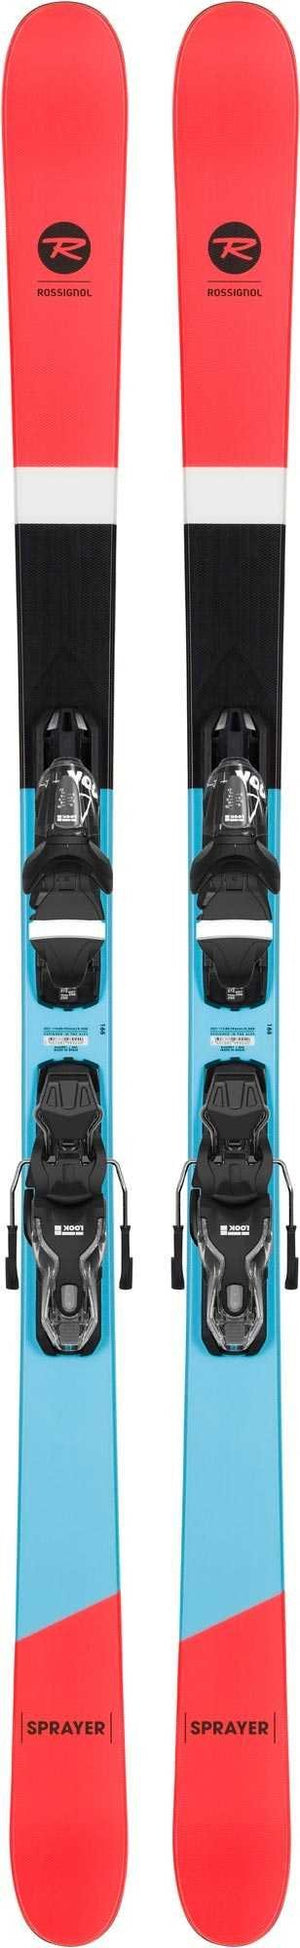 Rossignol Sprayer Ski + Xpress 10 B83 Binding 2020